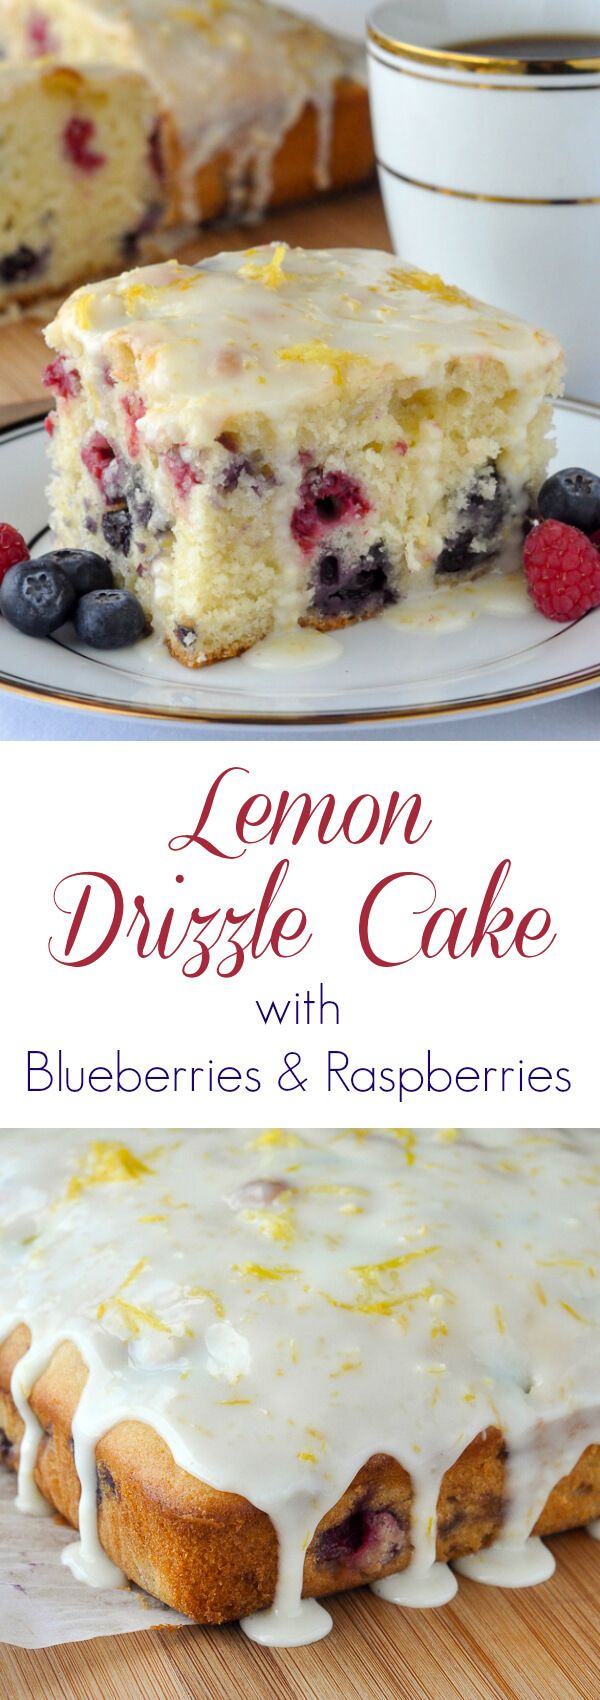 Lemon Drizzle Cake with Blueberries and Raspberries - a quick to make, simple recipe that harmoniously blends the complimentary flavours of lemon, blueberry and raspberry.